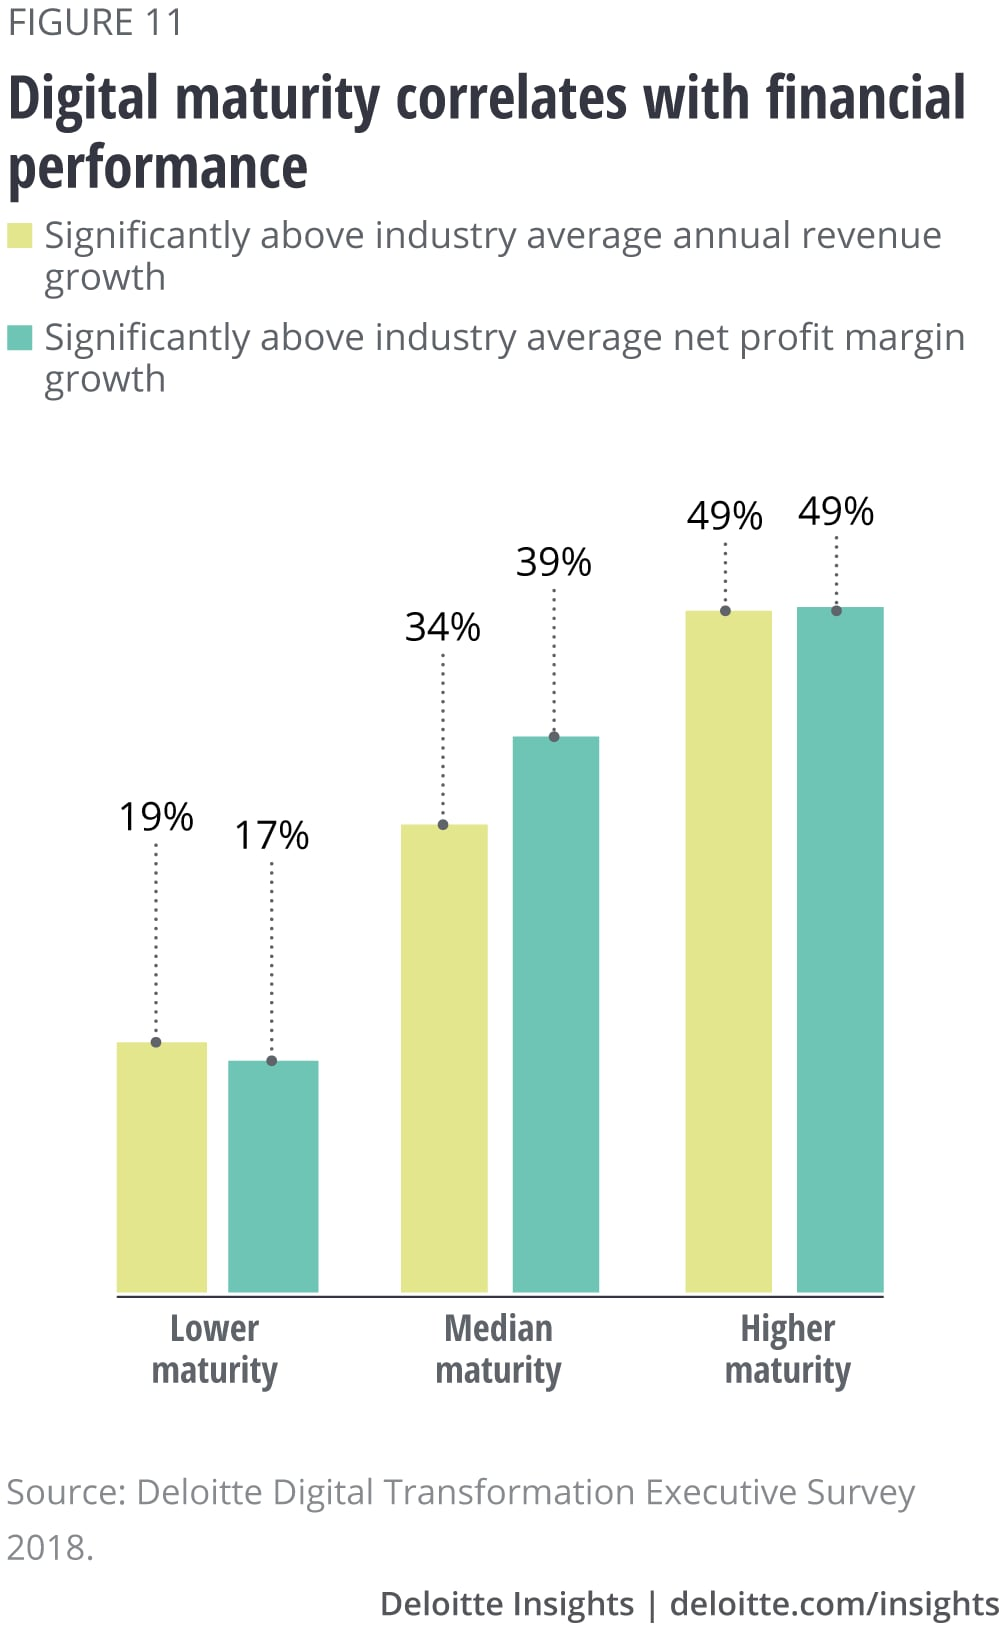 Digital maturity correlates with financial performance